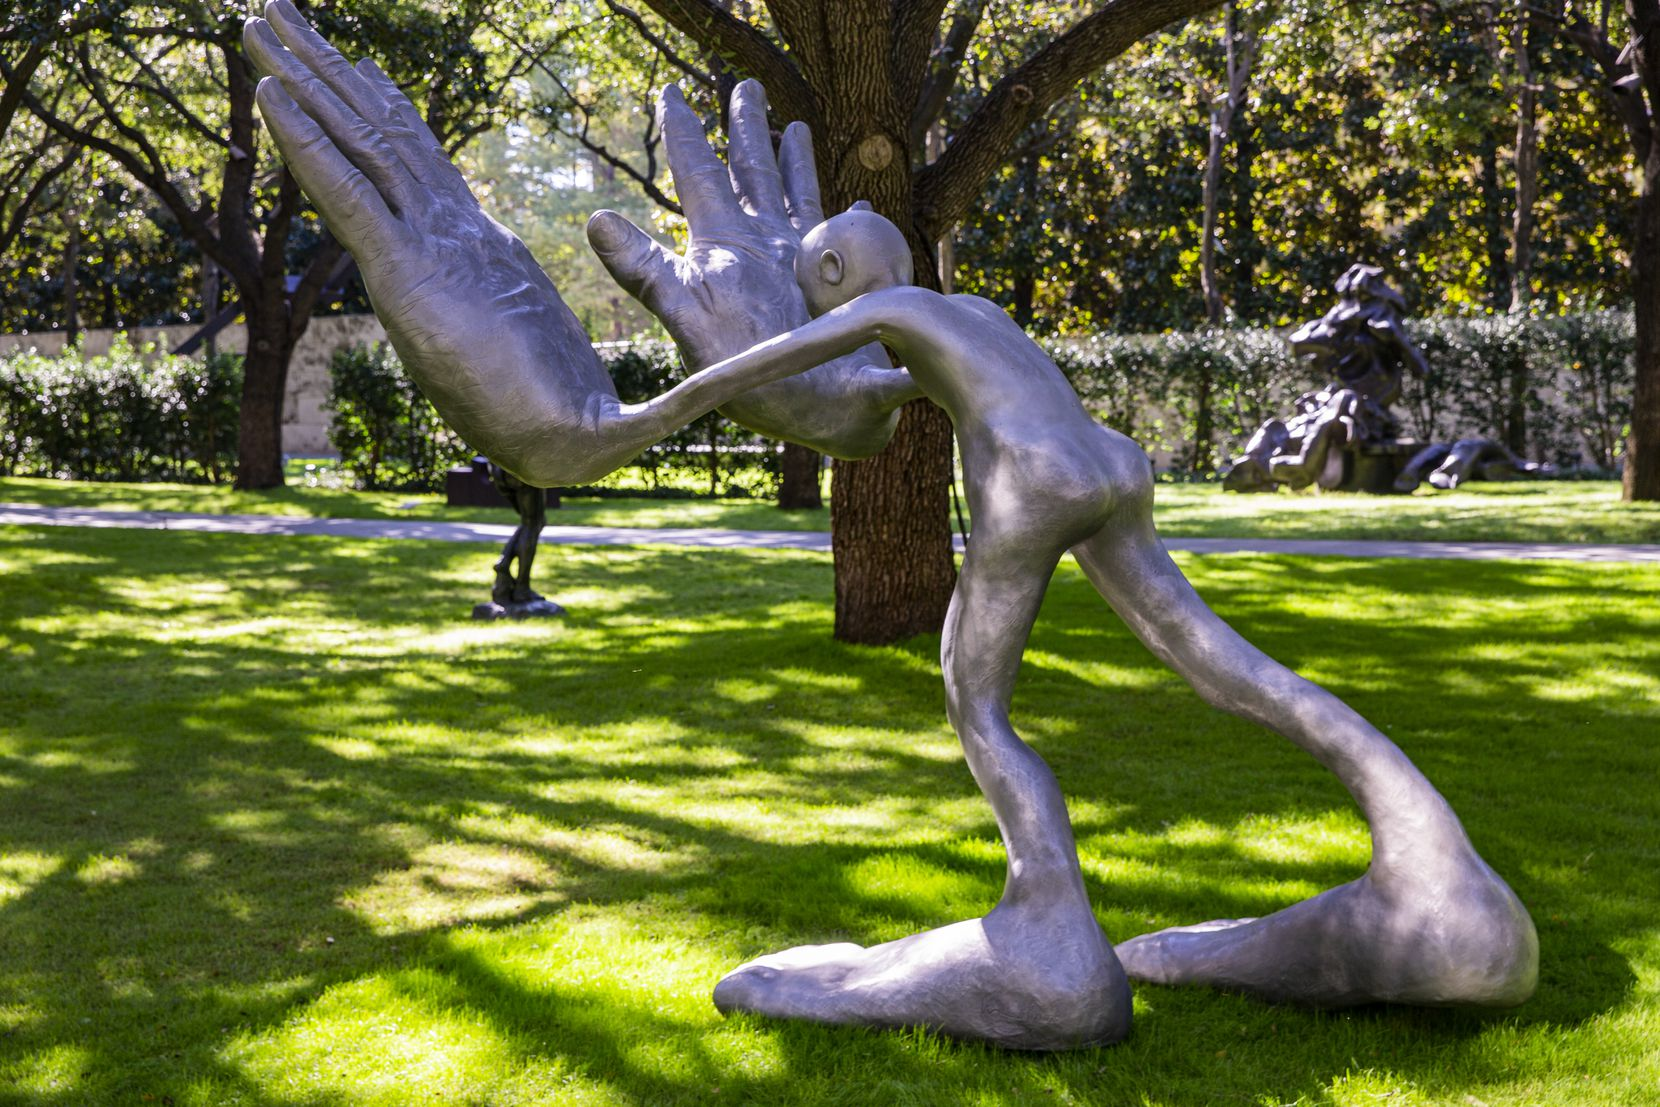 """bighands"" by Dallas artist Nic Nicosia, shown on Oct. 30, 2020, was recently acquired by the Nasher and installed in the sculpture garden."